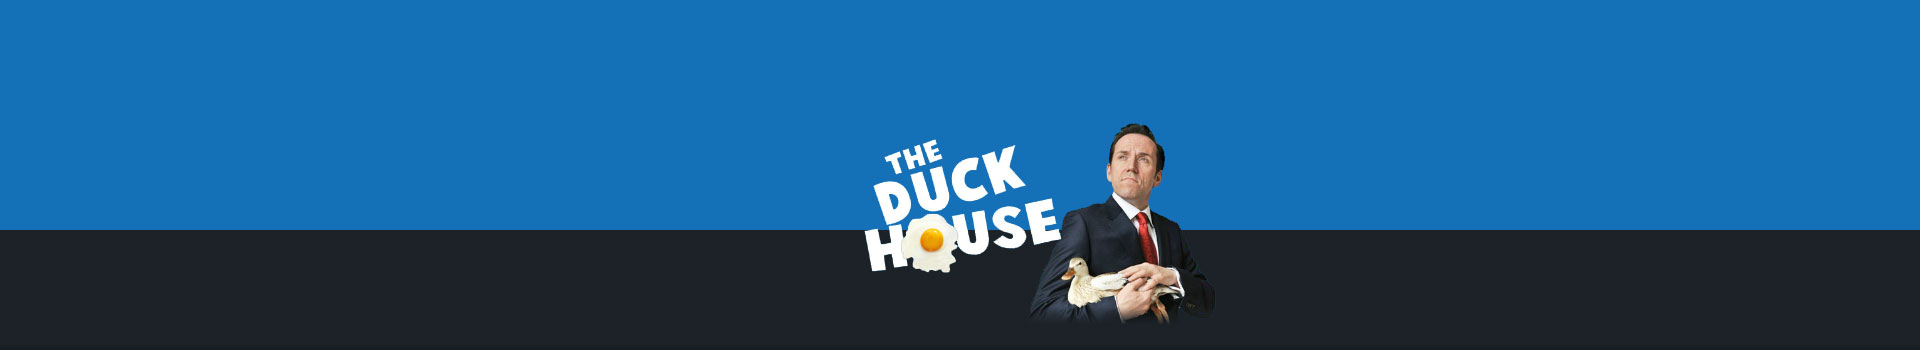 The Duck House banner image